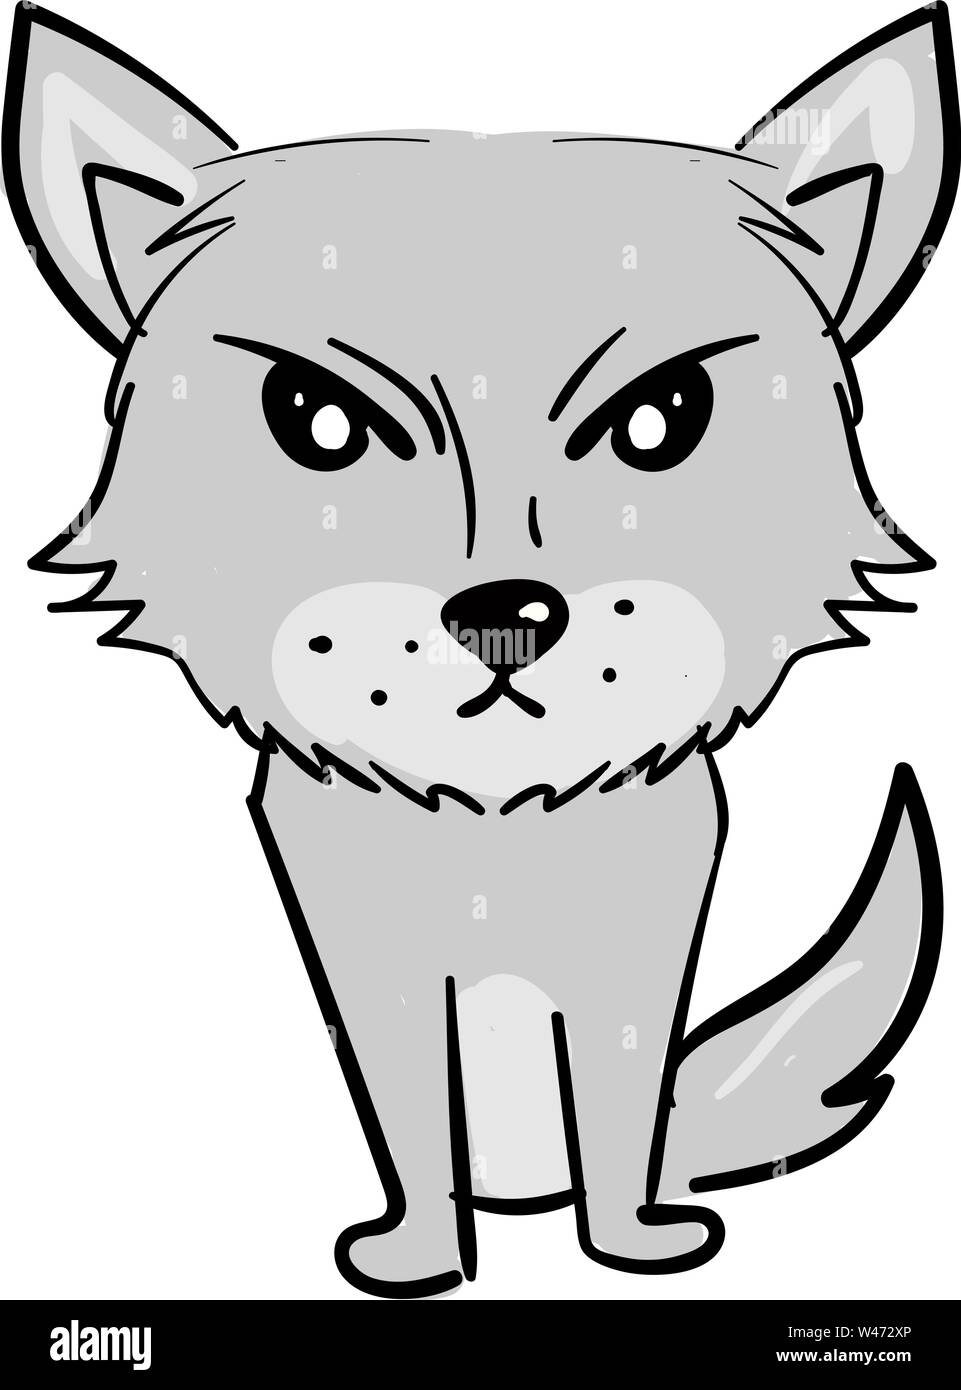 Angry wolf, illustration, vector on white background. - Stock Image